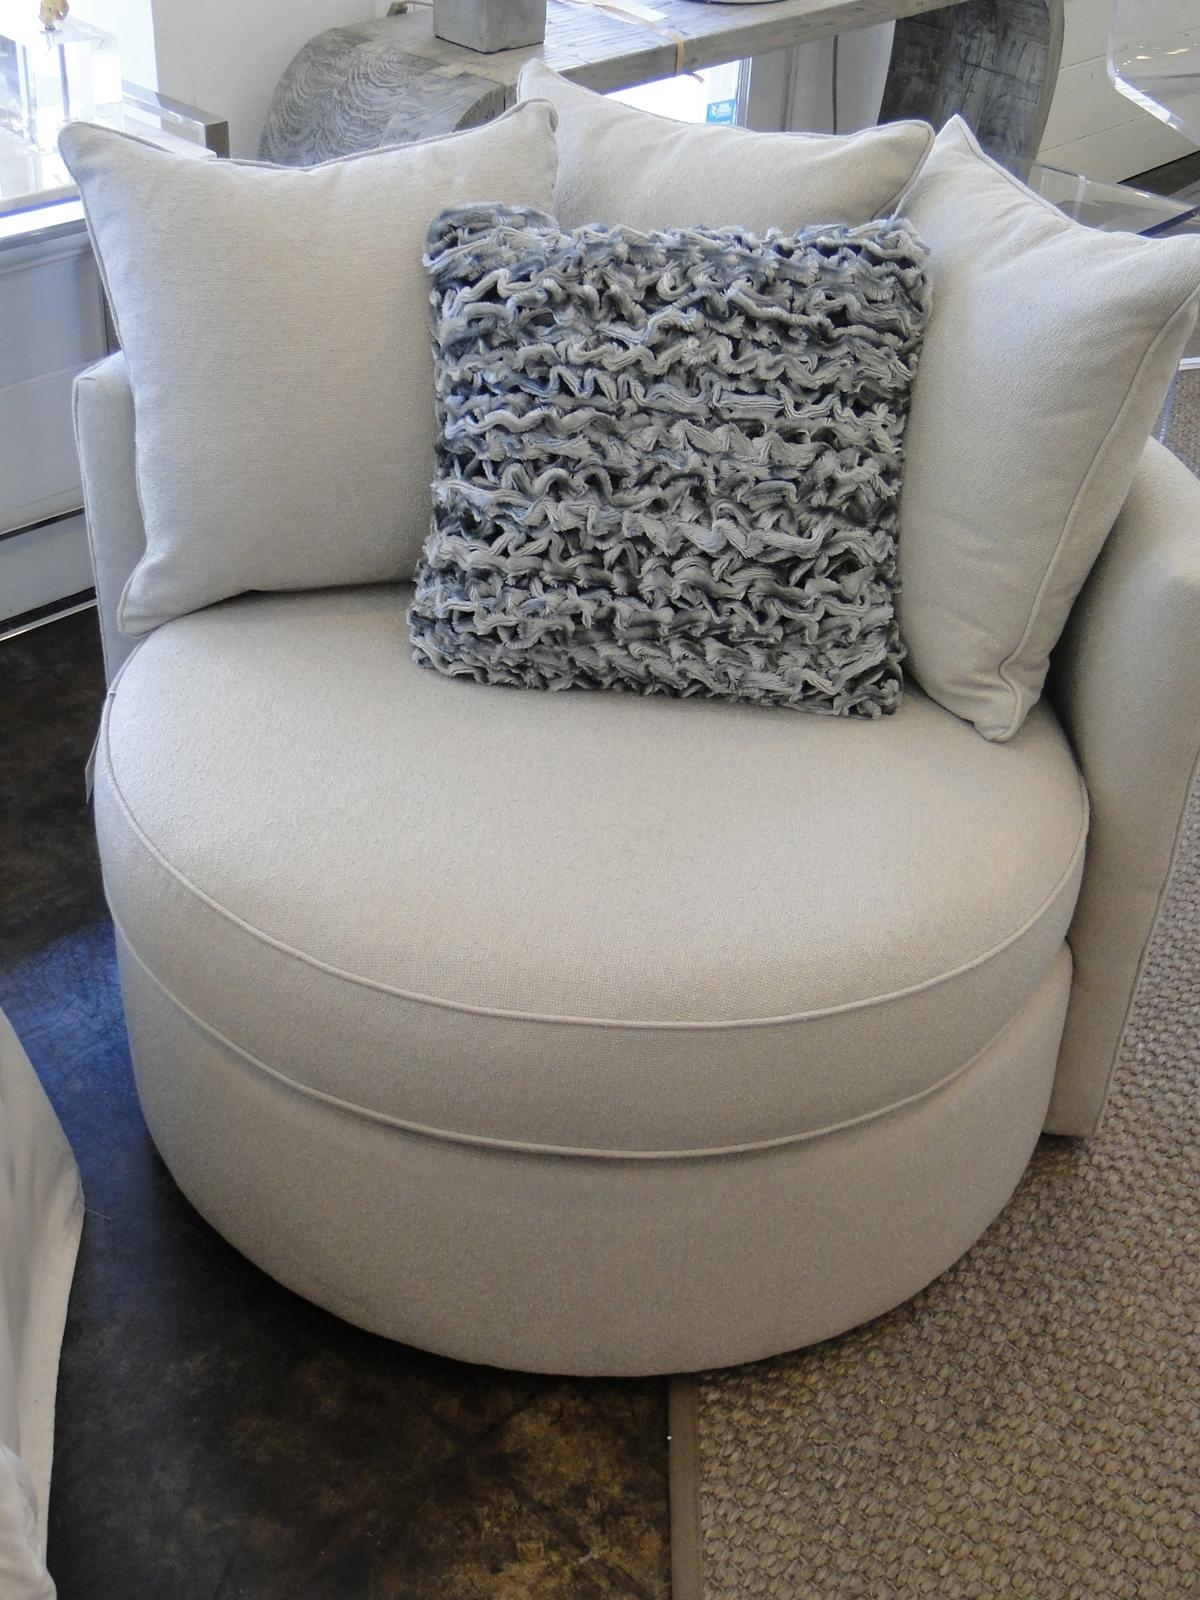 Furniture: Sophisticated Oversized Round Swivel Chair With With Round Swivel Sofa Chairs (Image 4 of 20)